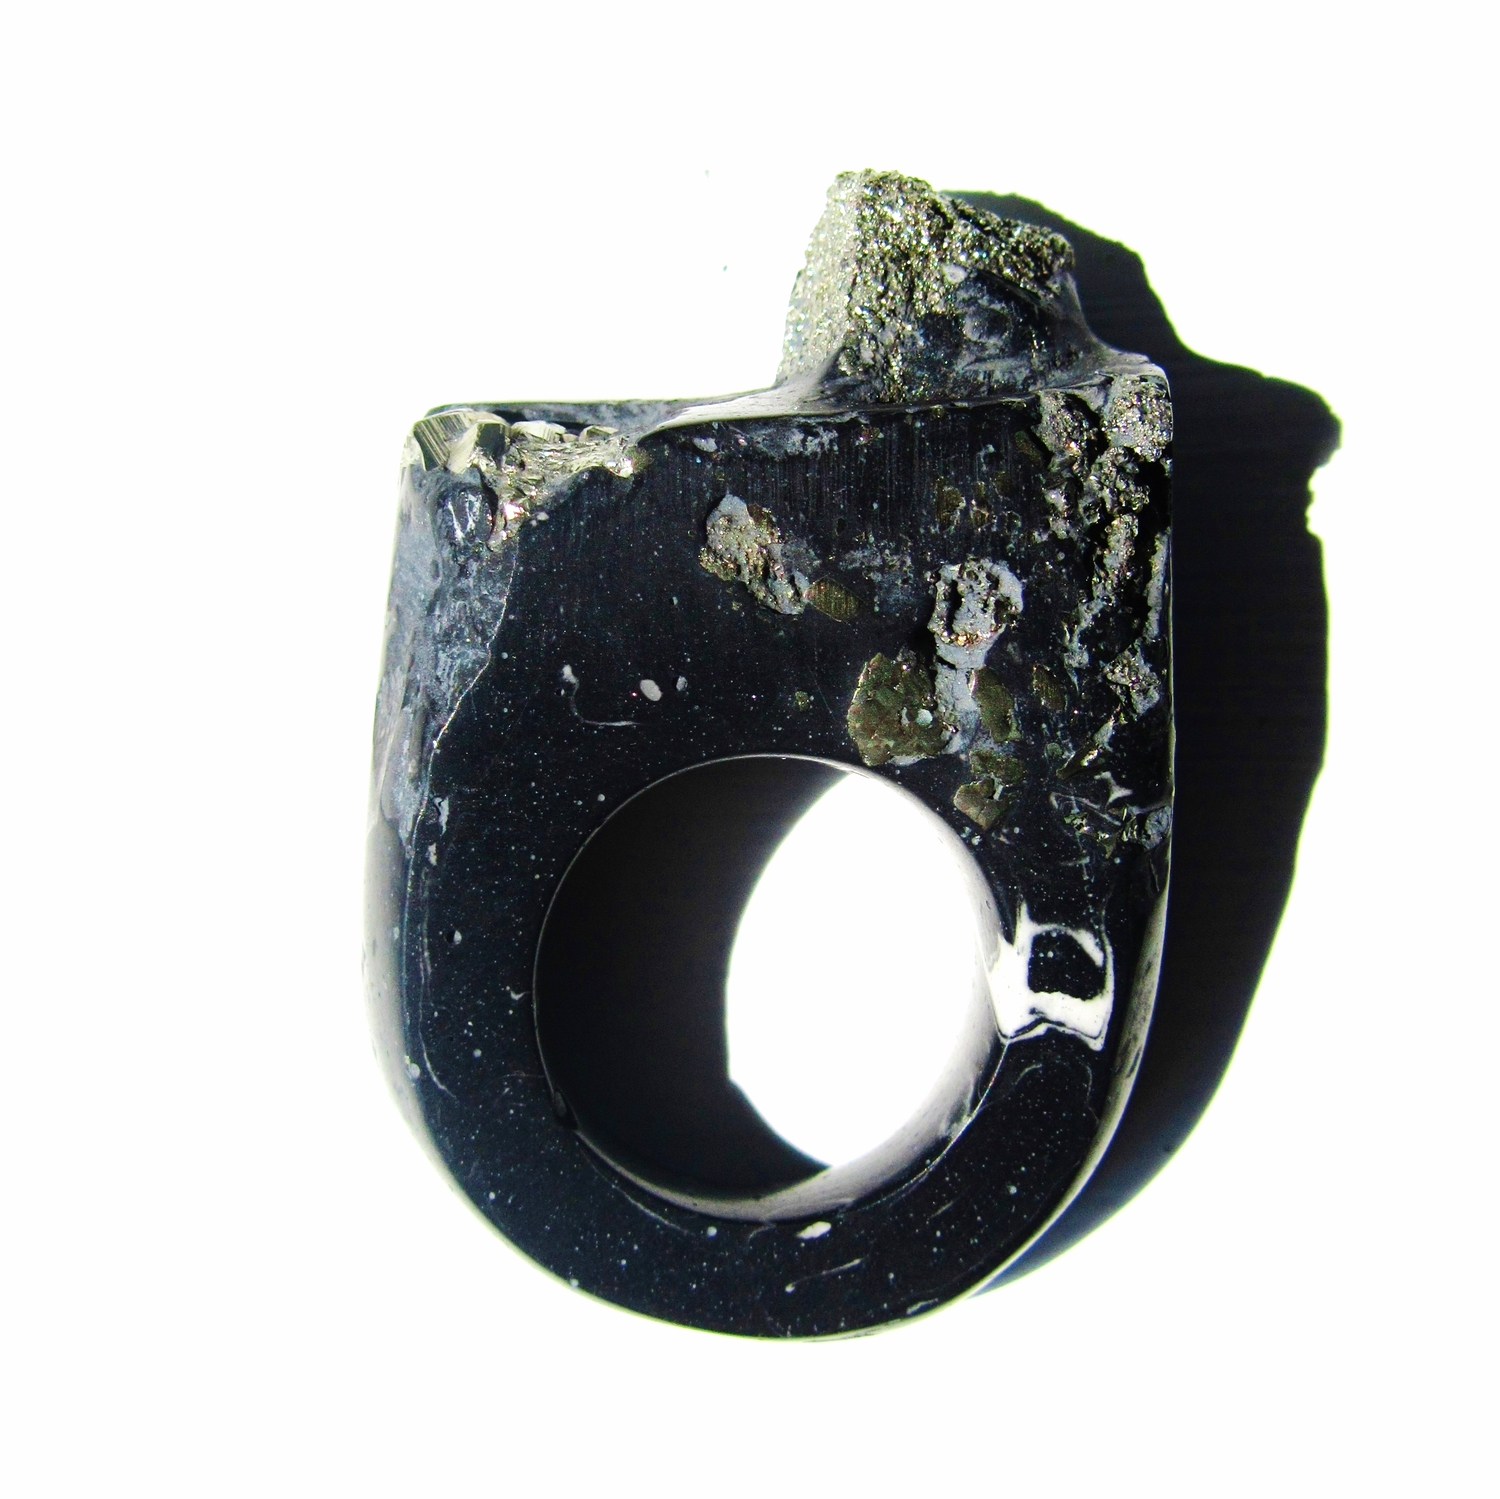 Marbled Black & Pyrite Hewn Ring, have yours bespoke made with a unique mineral specimenemail info@jademellor.com for detail.